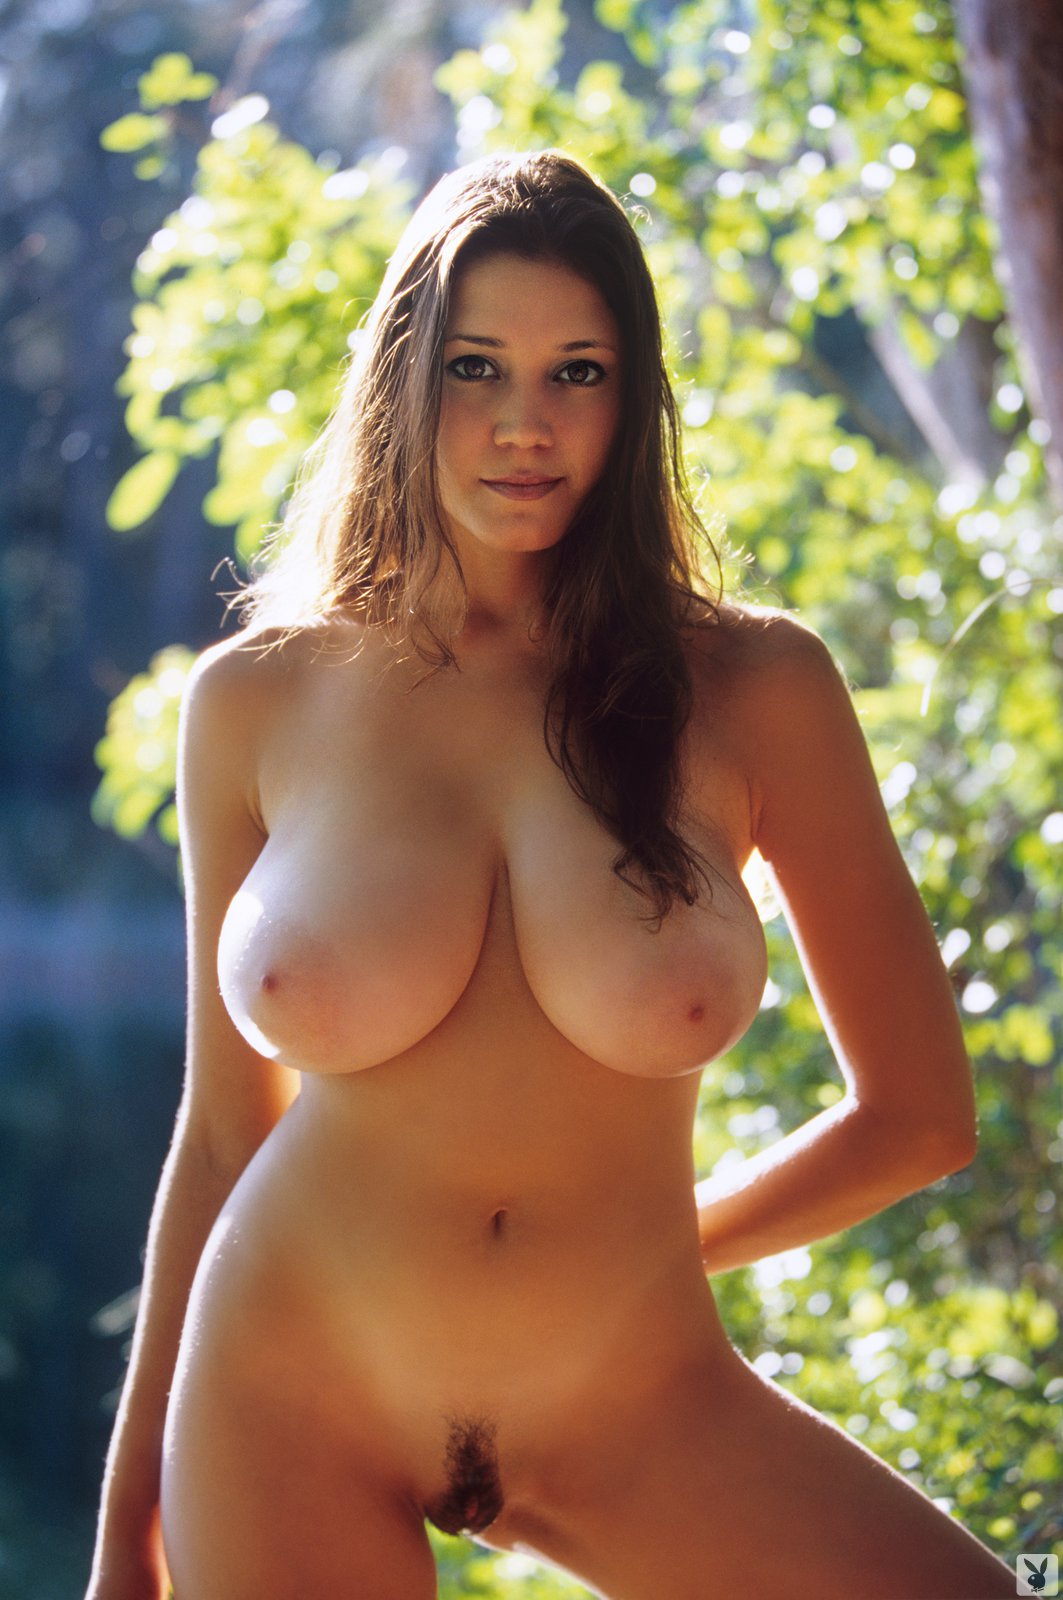 That can playboy girl shows tits really. All